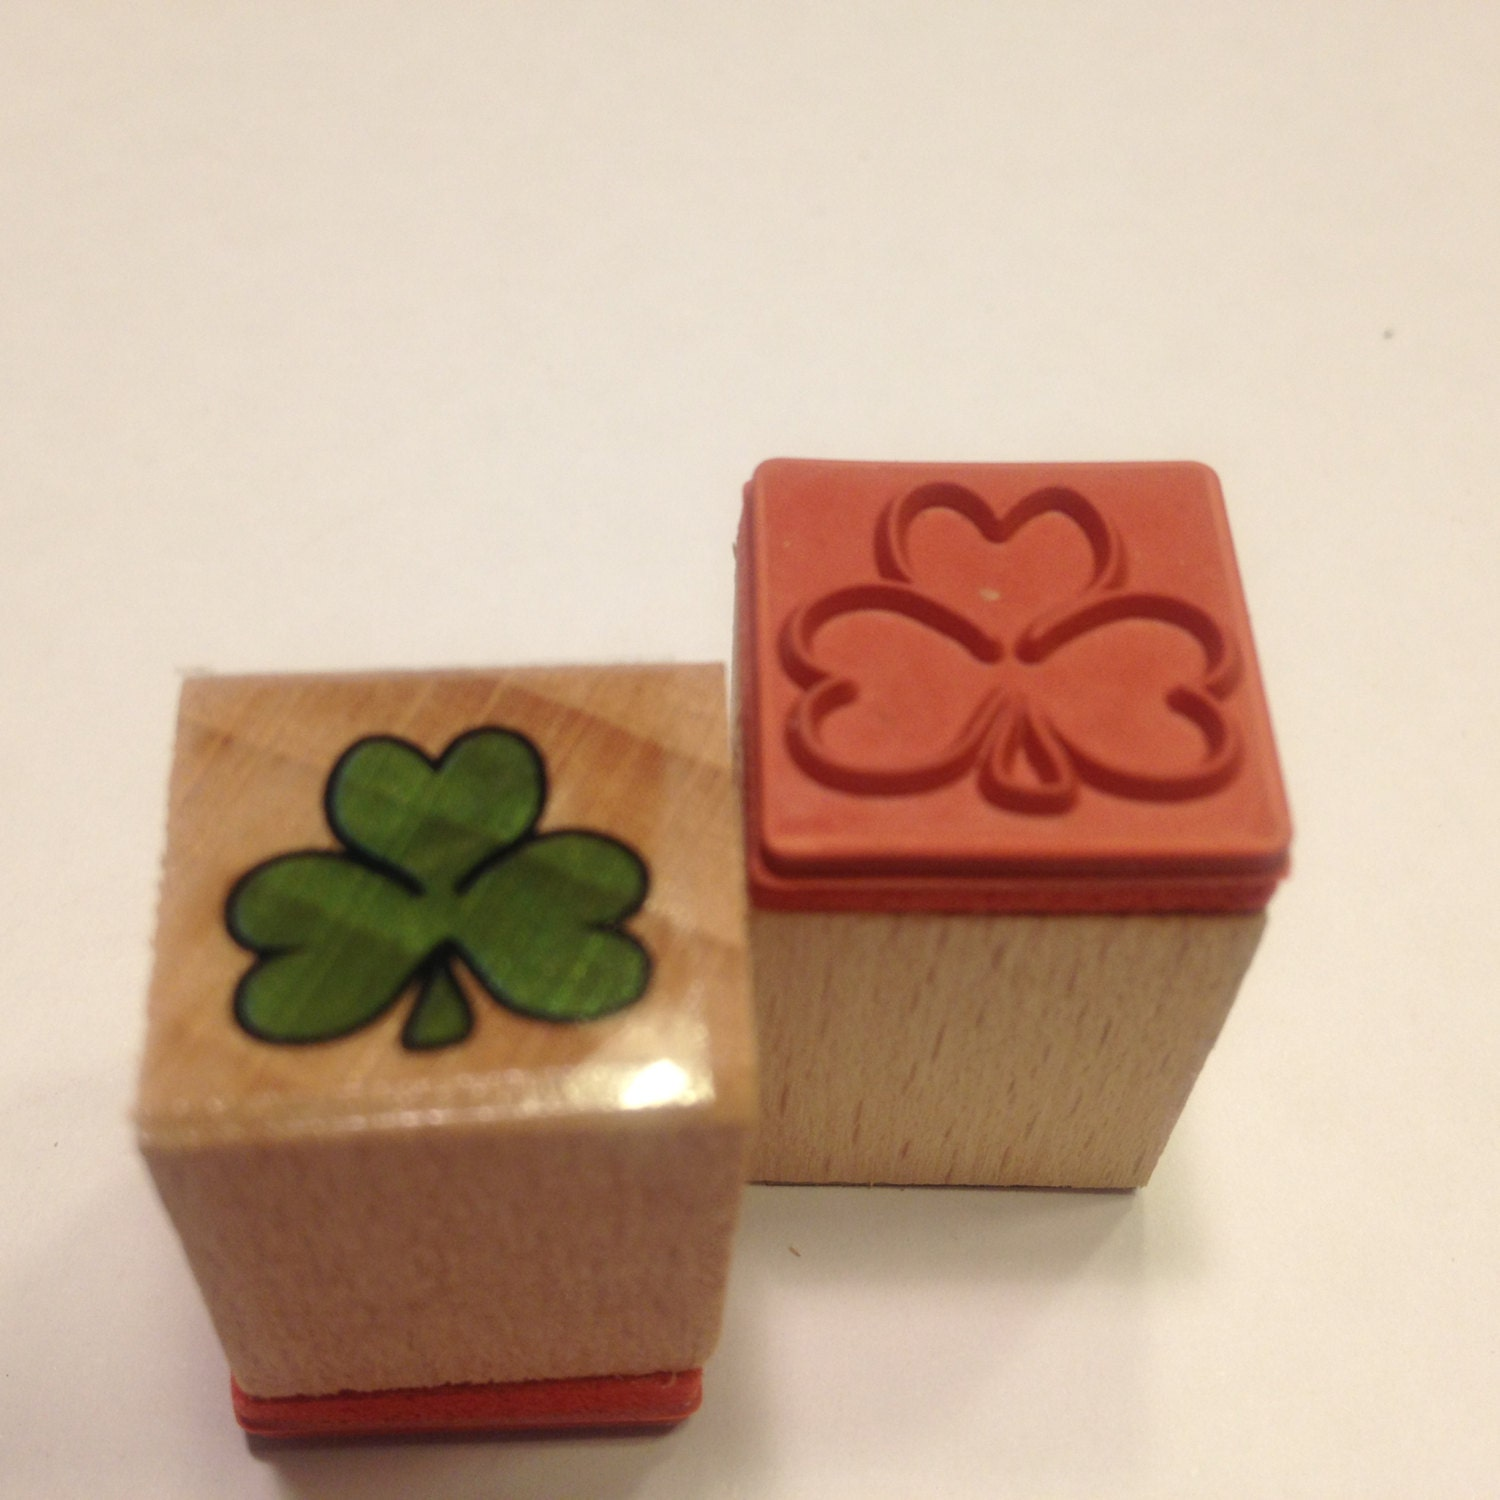 Small Shamrock Rubber Stamps 16 Mm Sb3 From